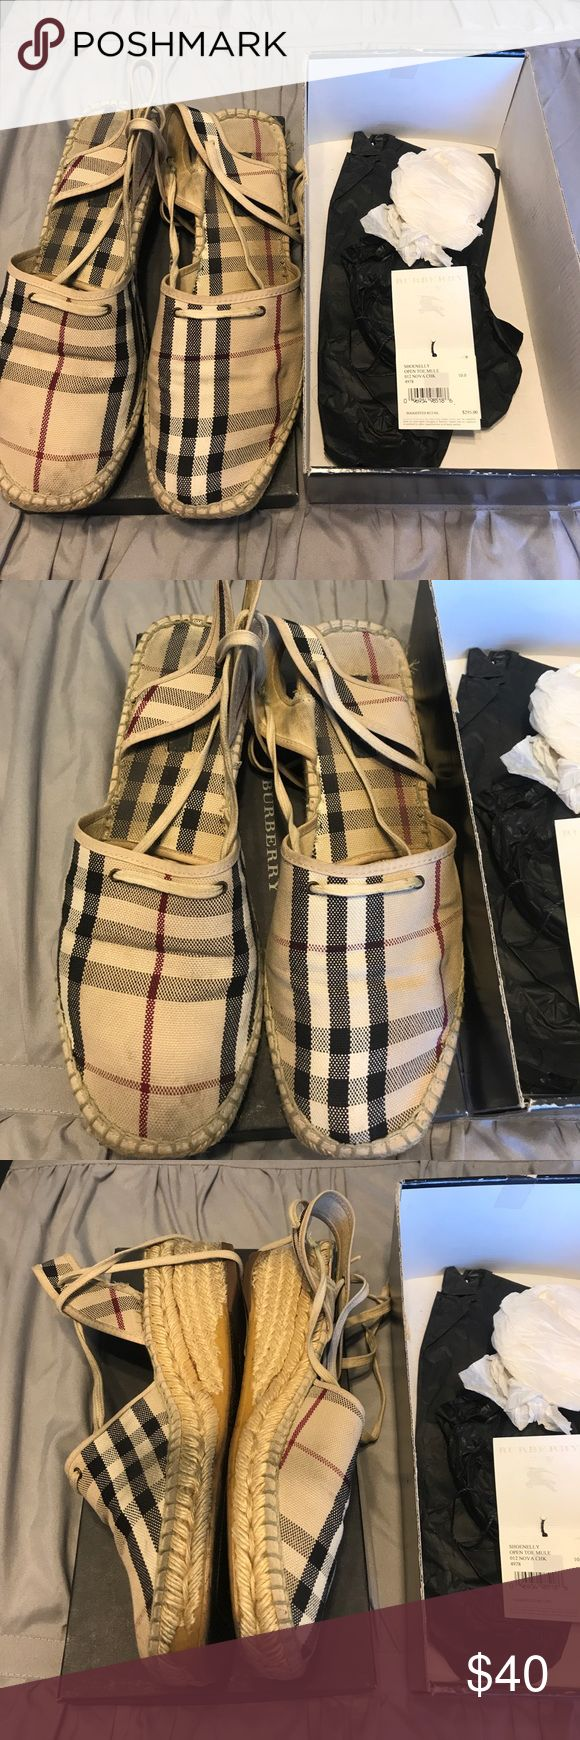 BURBERRY summer tie up sandals OPEN TO OFFERS!!! Gently used tie up BURBERRY summer sandals! Burberry Shoes Sandals